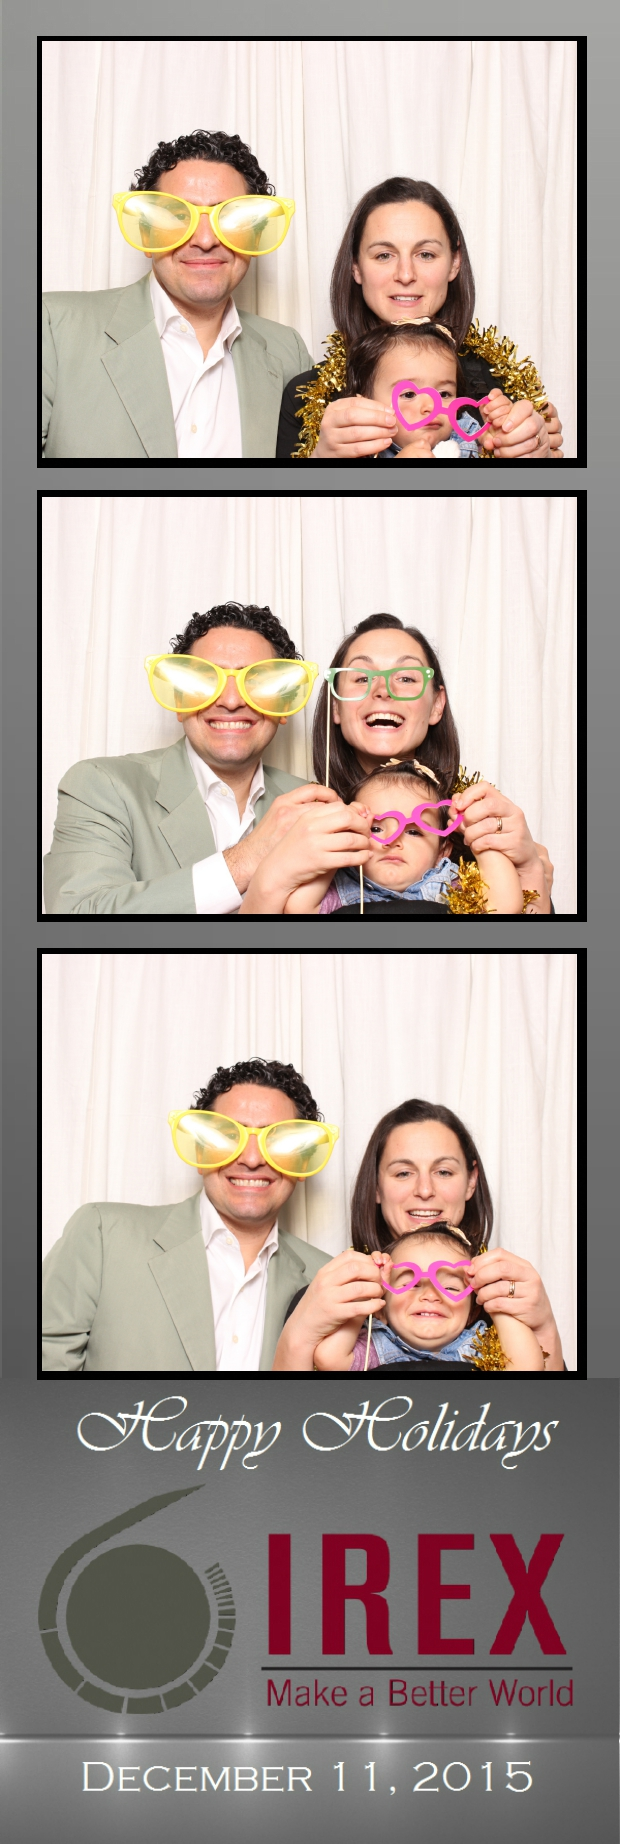 Guest House Events Photo Booth Strips IREX (27).jpg